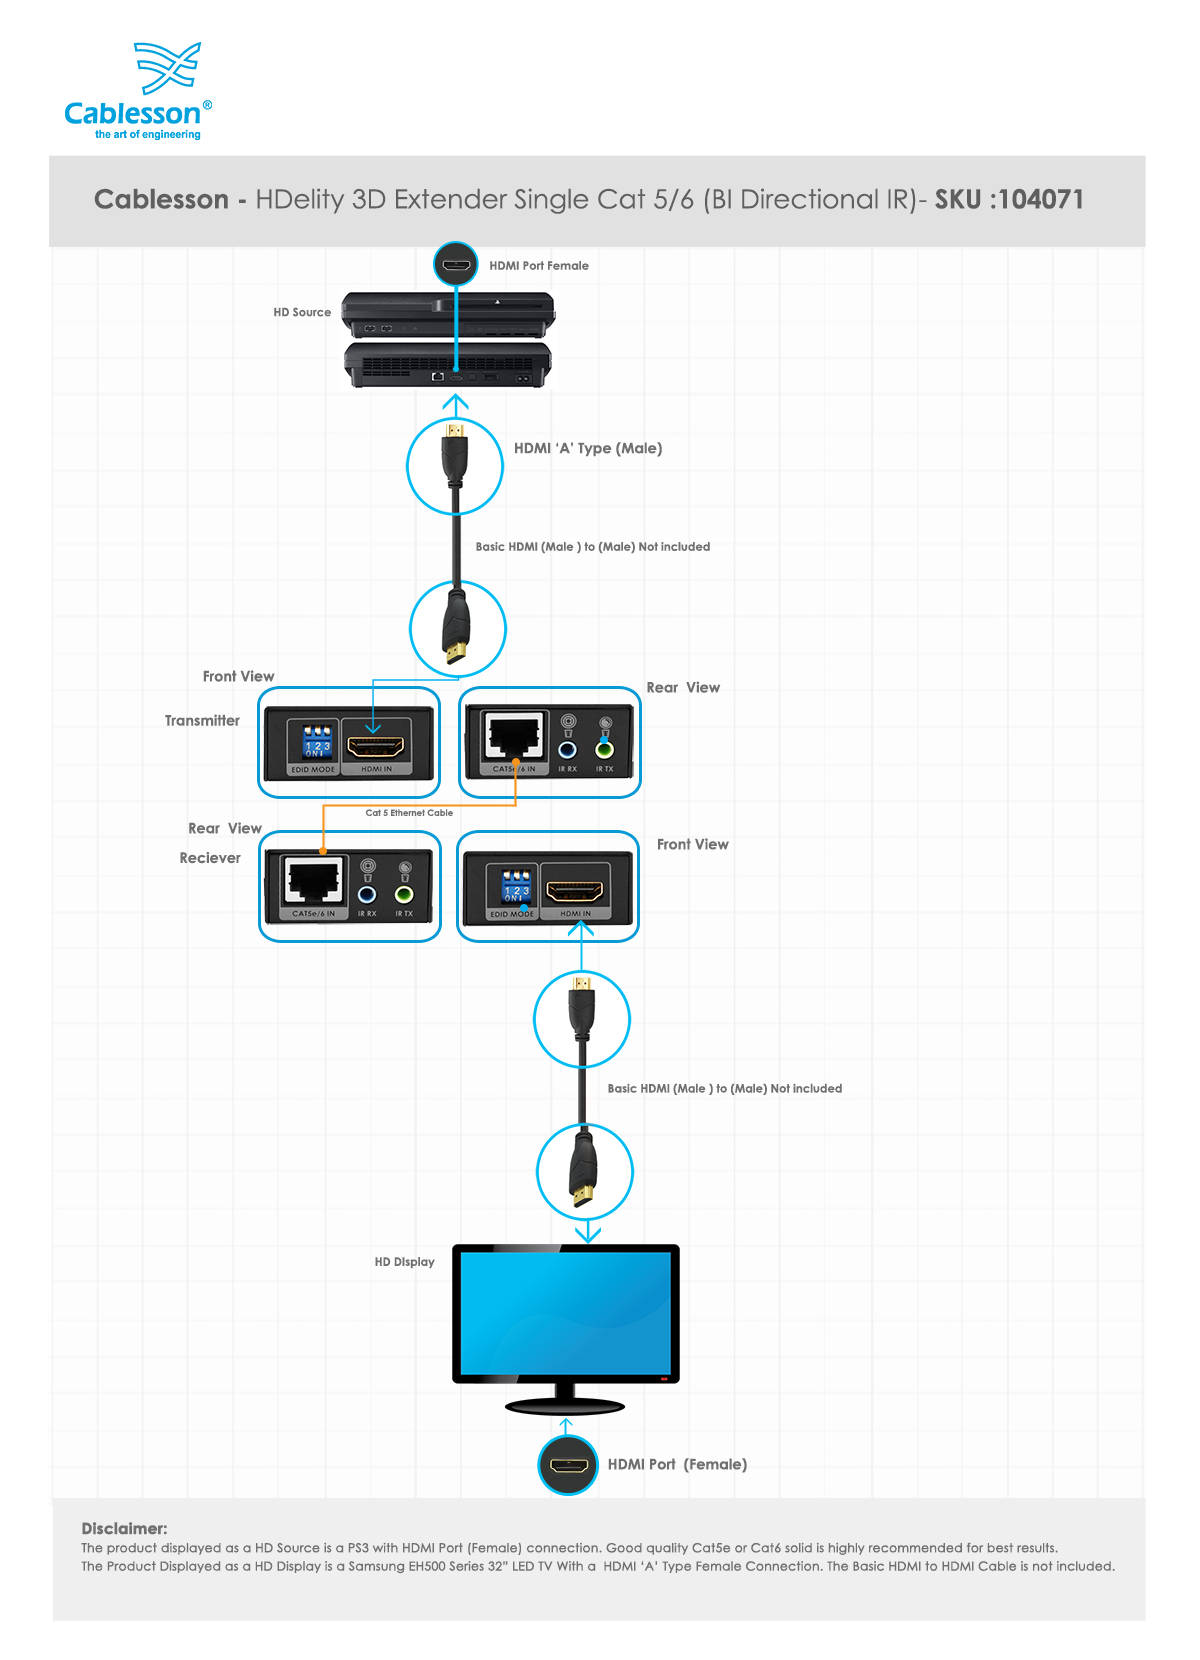 Cablesson Hdelity Hdmi 3d Extender Single Cat5 6 Bi Directional Ir Wiring Diagram Try Watching This Video On Youtubecom Or Enable Javascript If It Is Disabled In Your Browser